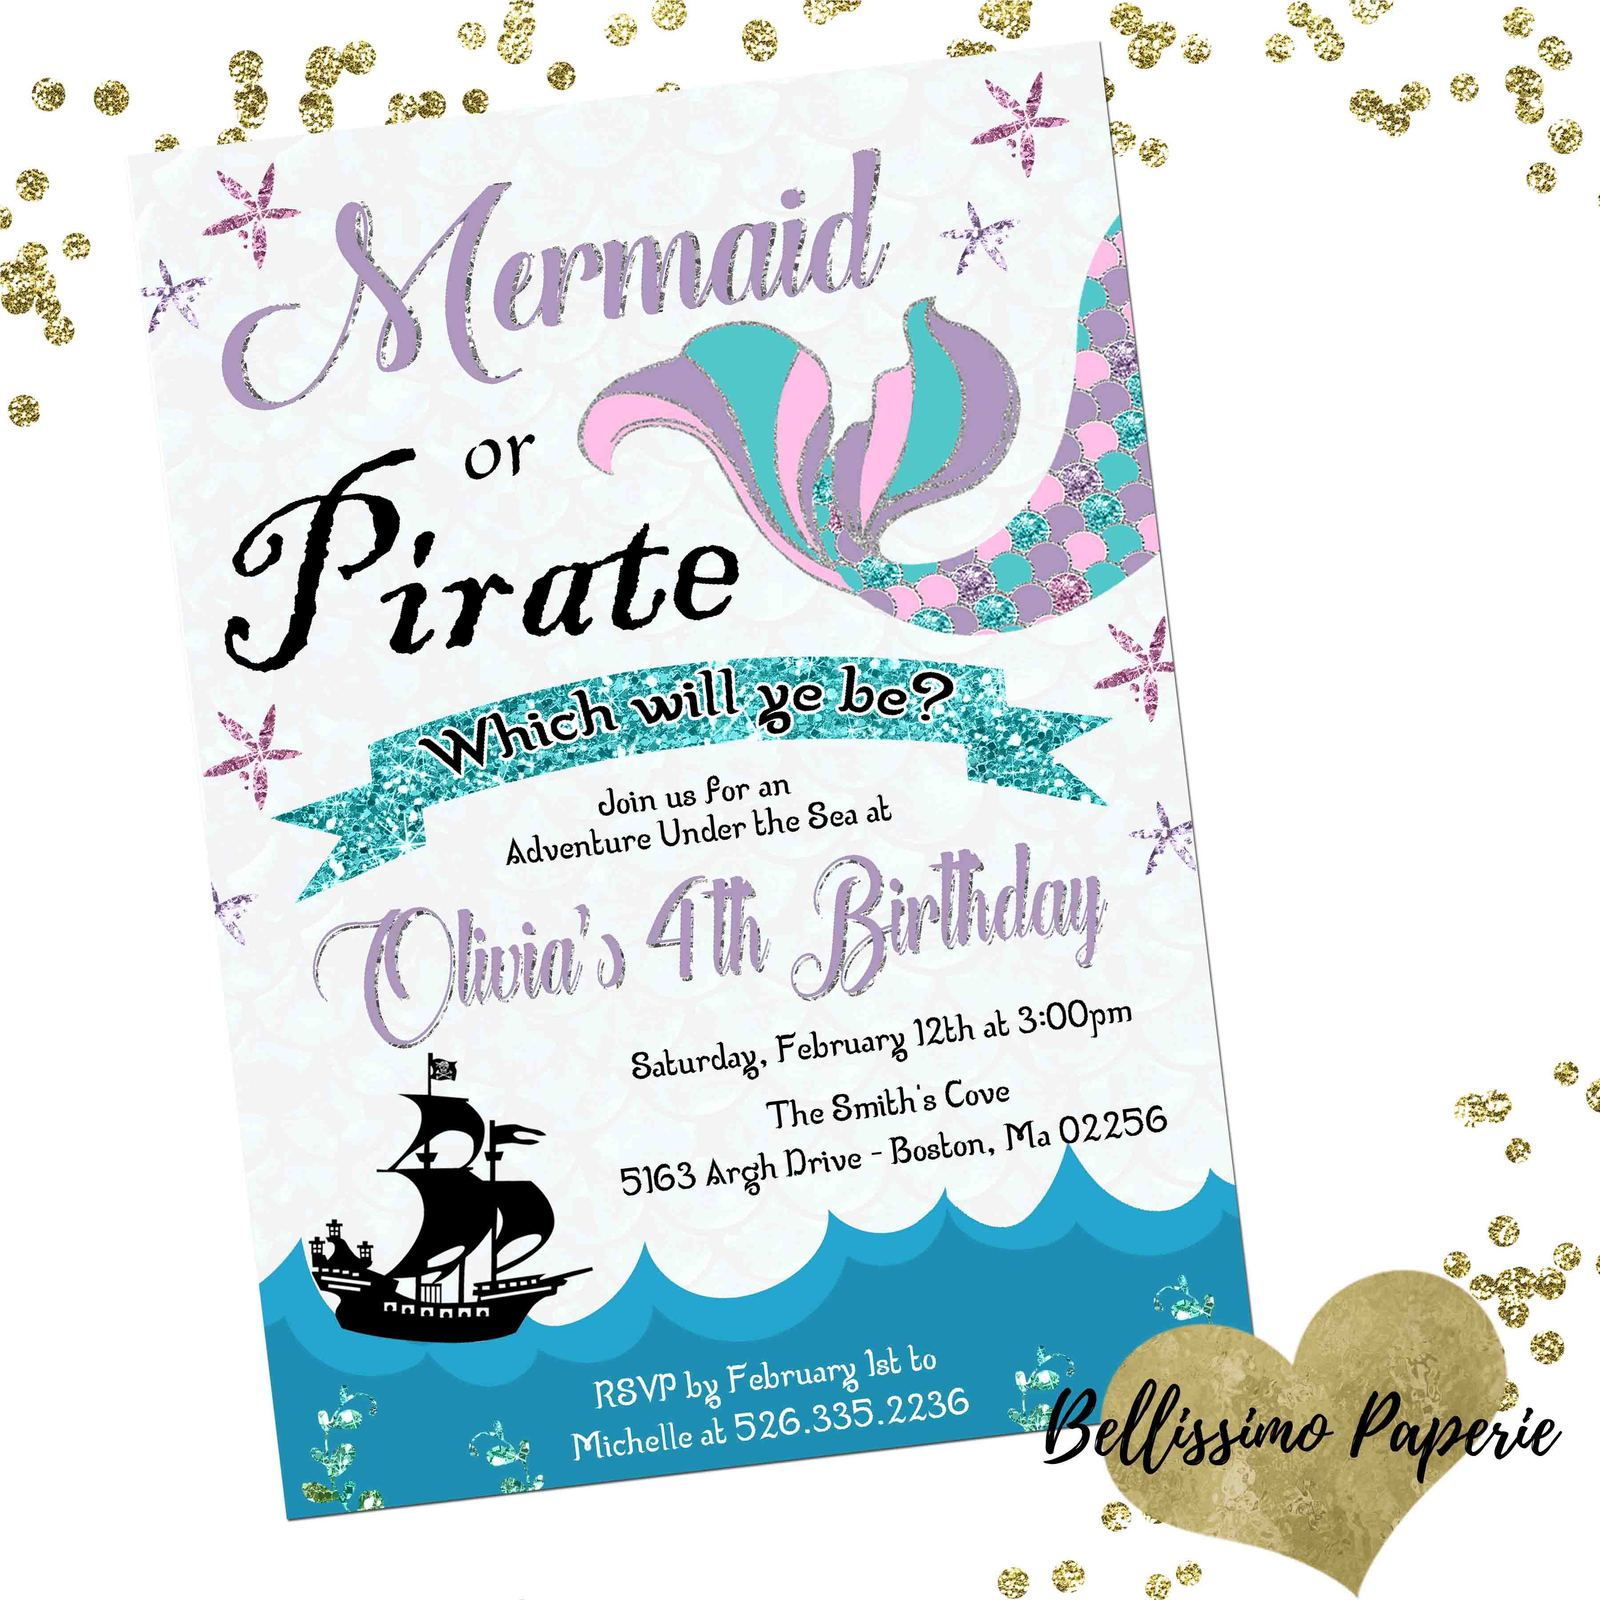 Mermaid or Pirate Birthday Invitation and 47 similar items